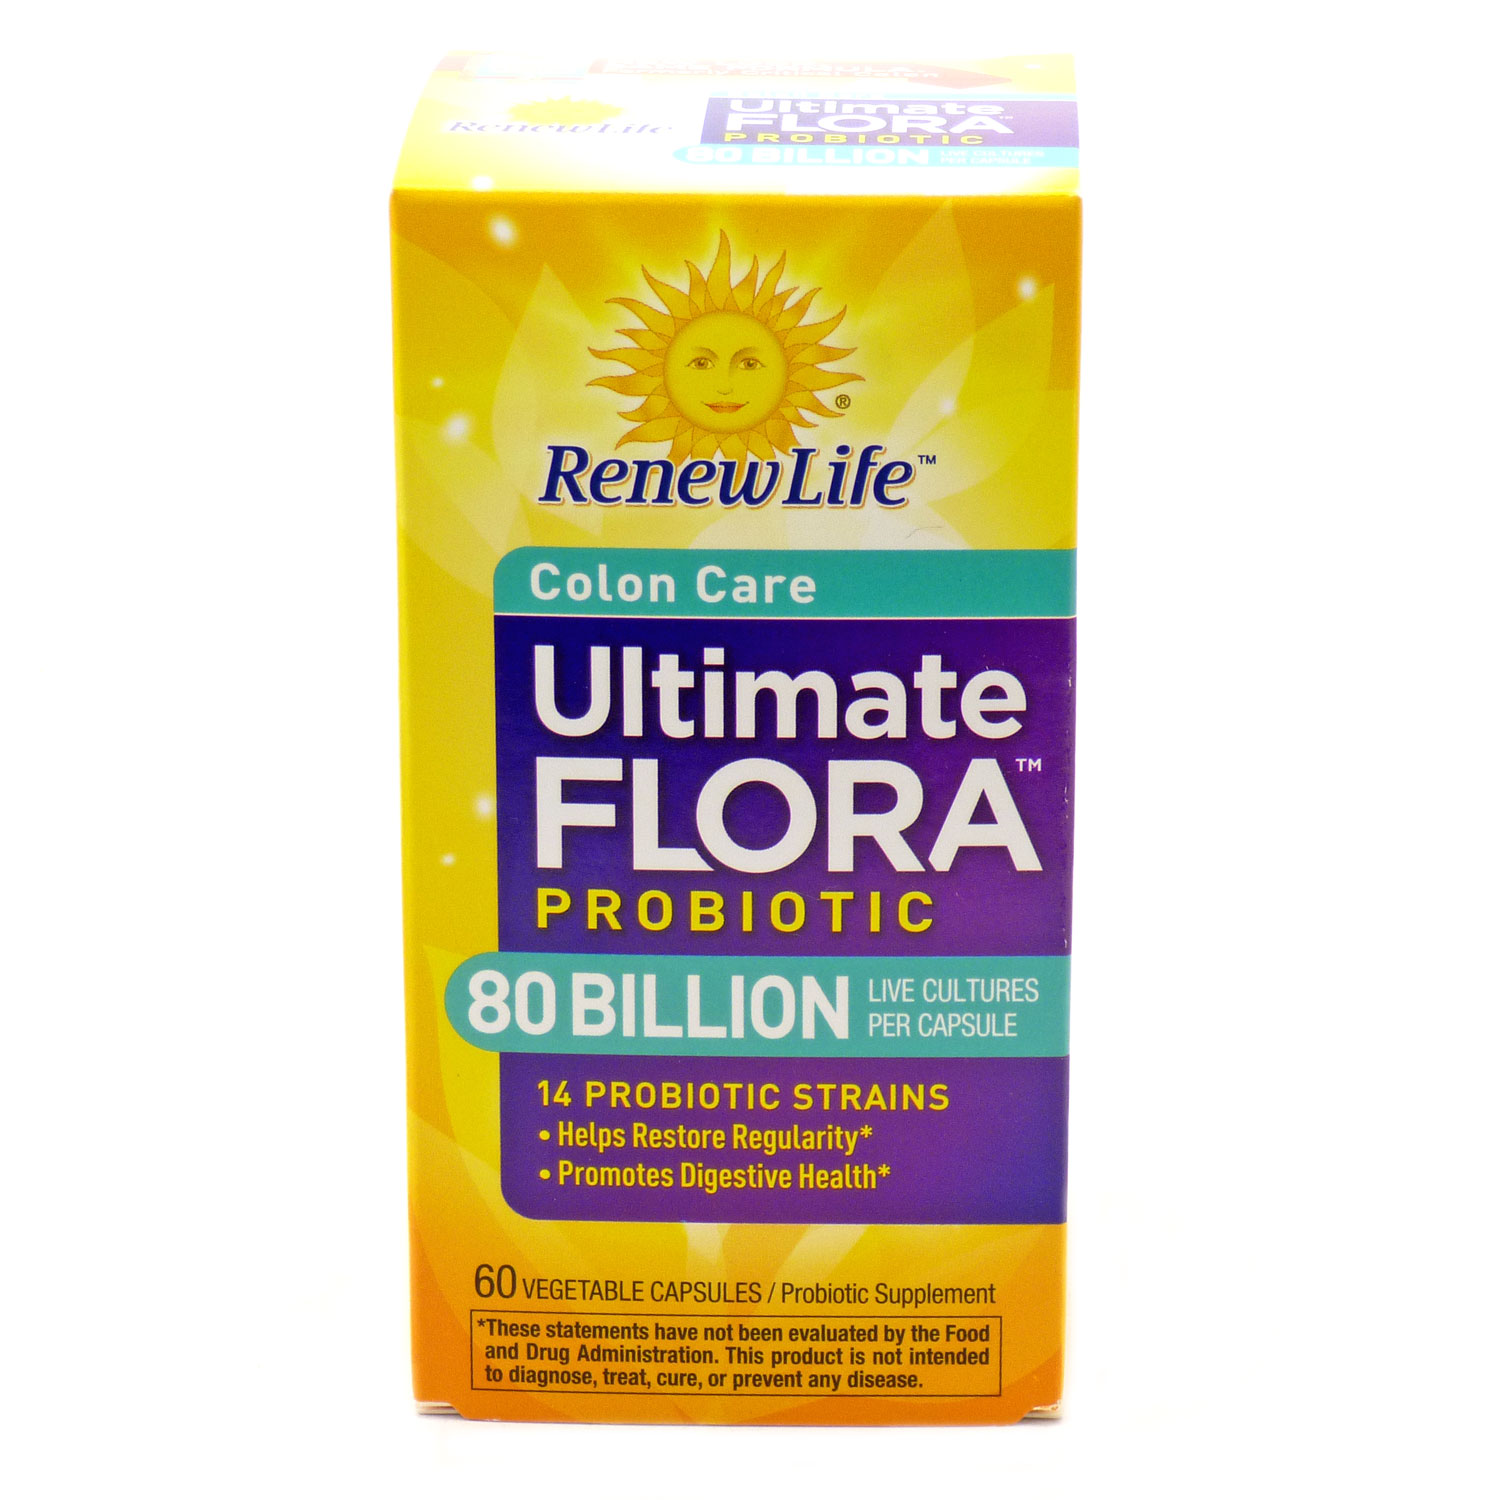 Renew Life Ultimate Flora Critical Colon BifidoMAX 80 Billion by RenewLife - 60 Caps